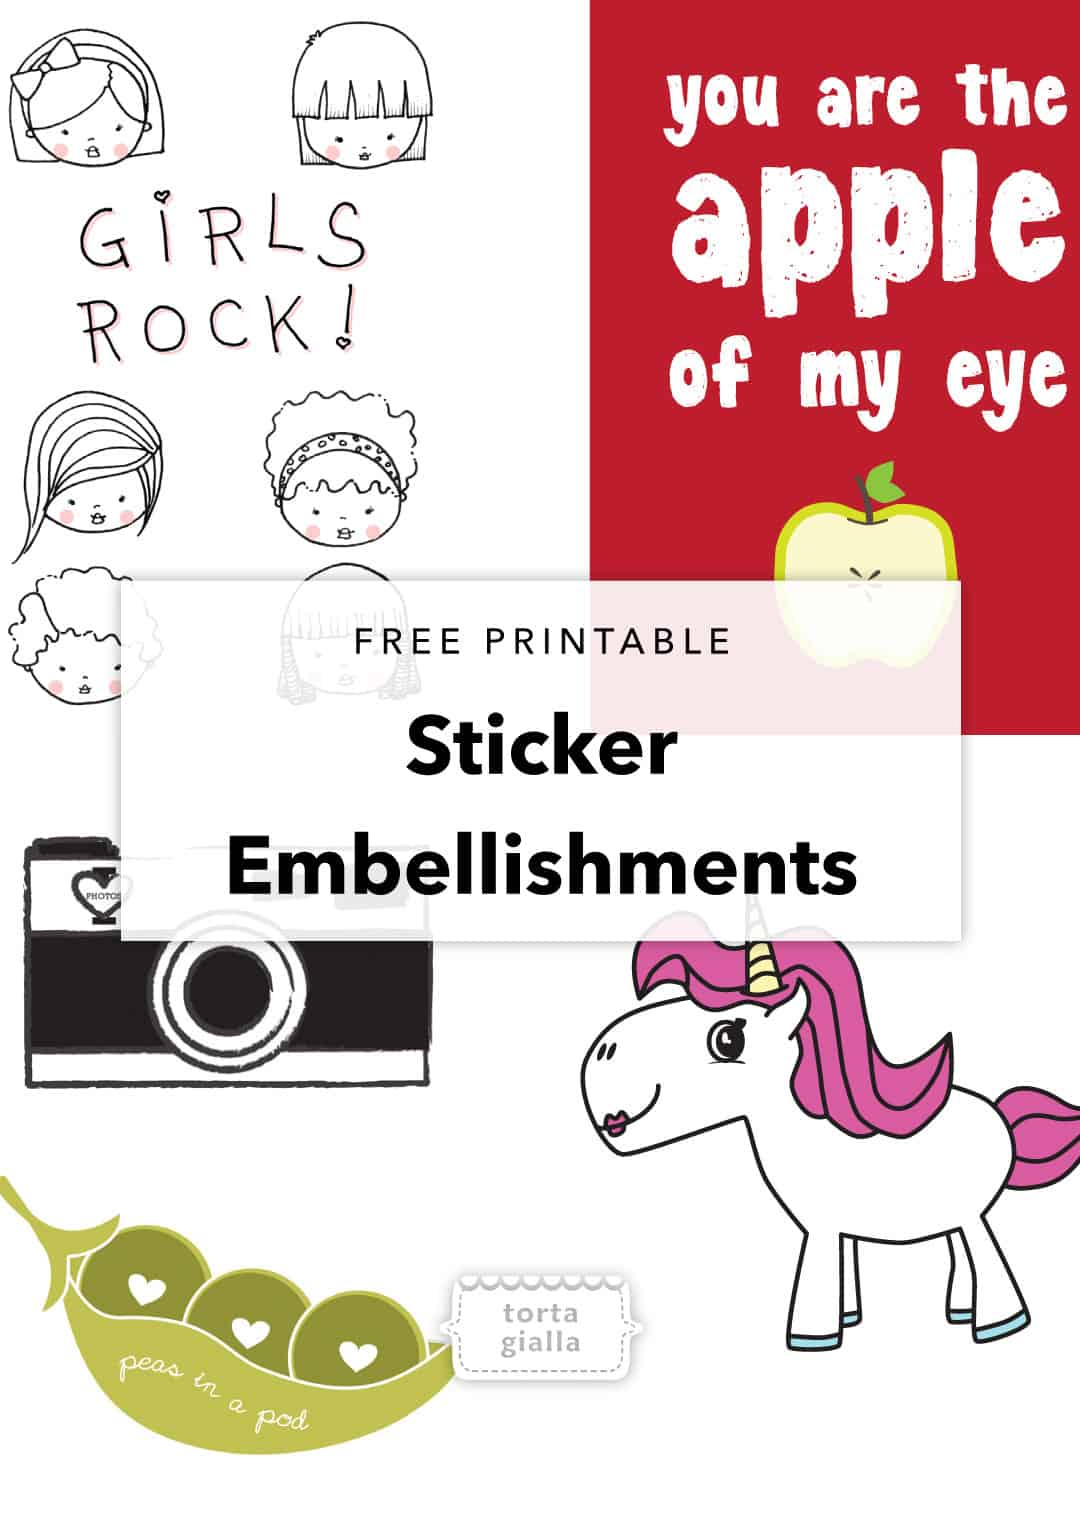 Free printable sticker embellishements on tortagialla.com